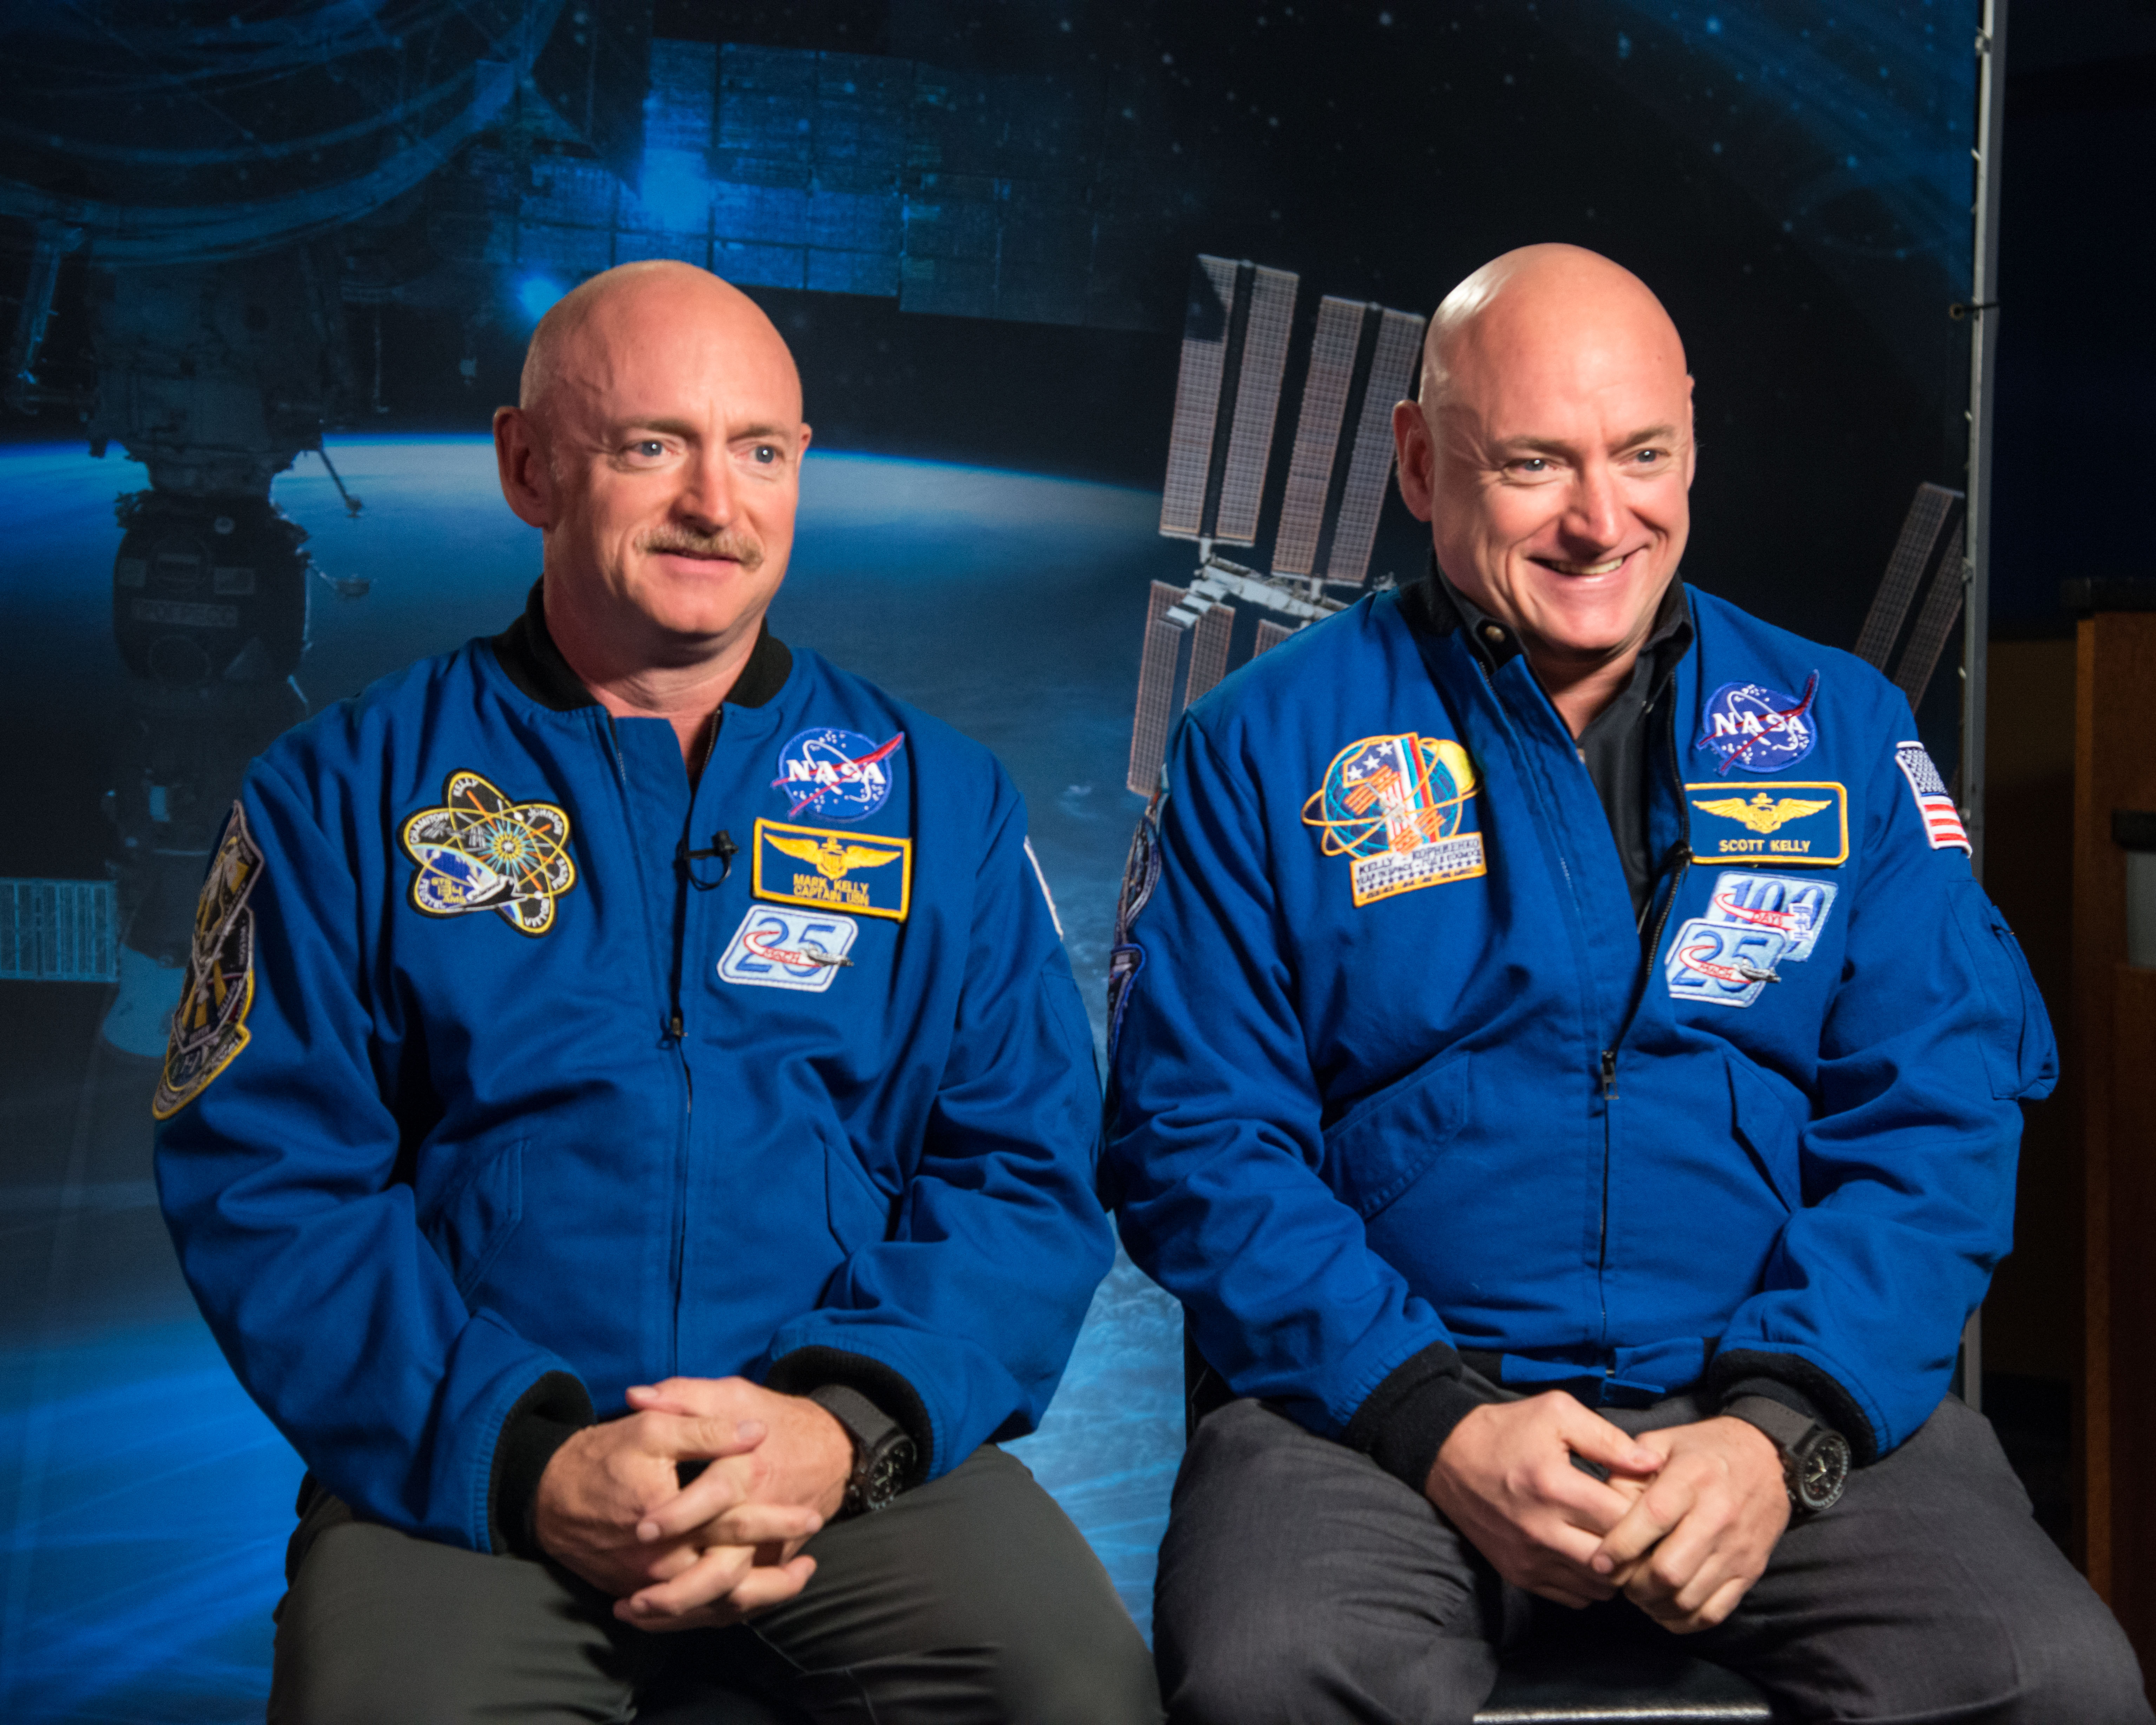 Space travel may cause long-term change to DNA, says NASA's Twins Study